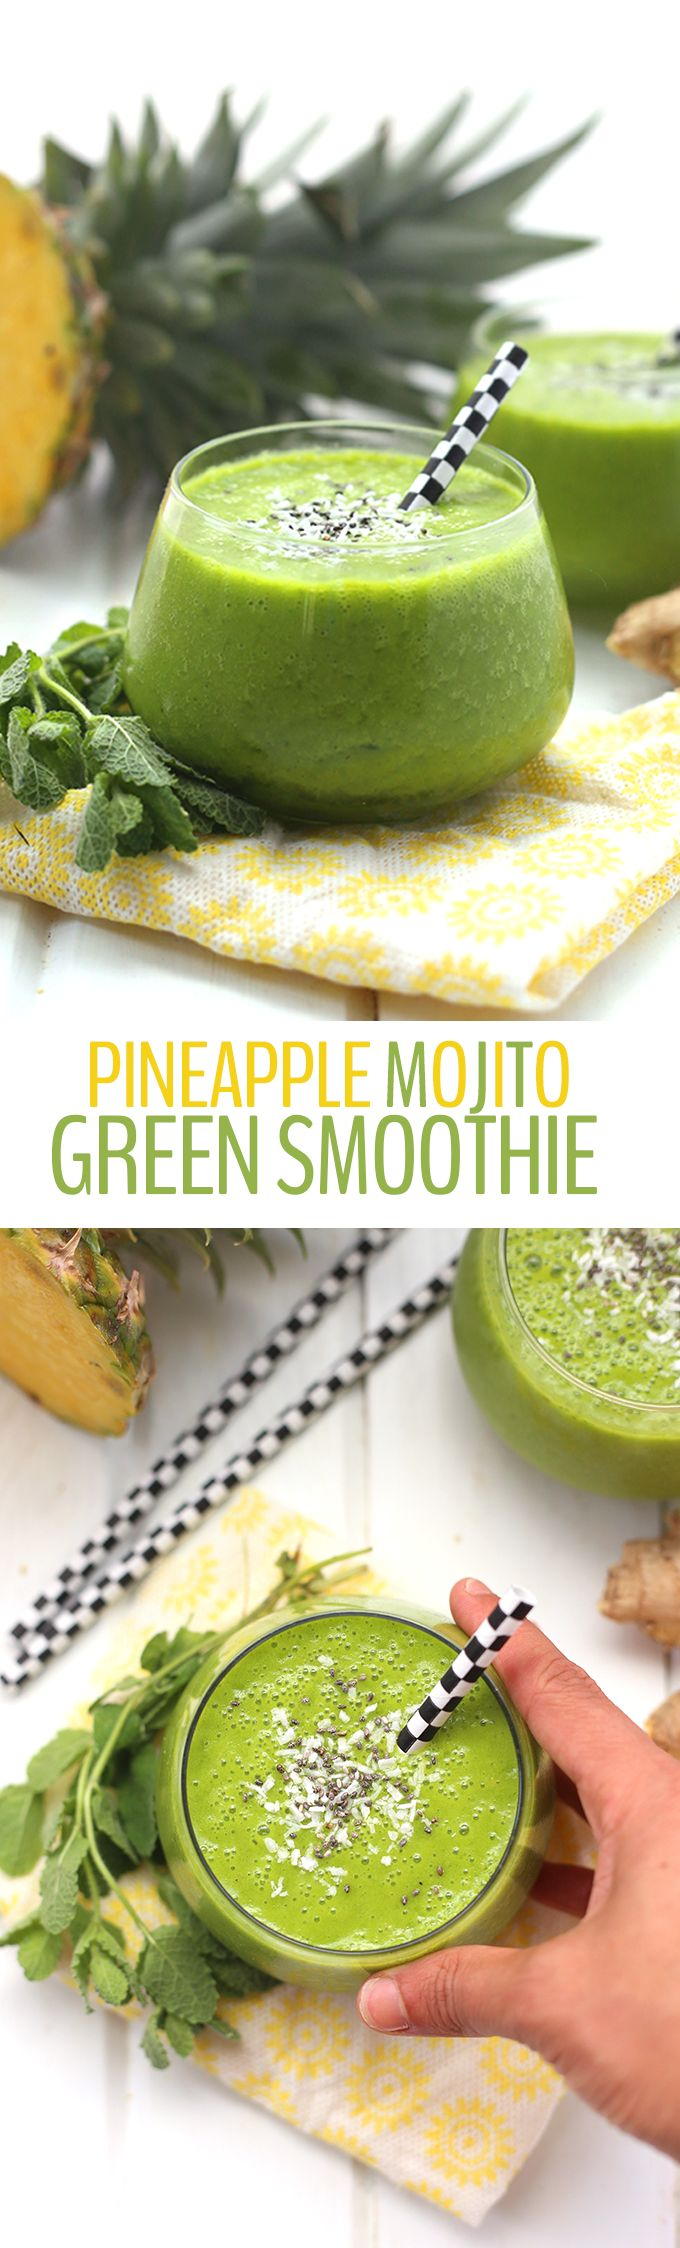 A tropical twist on a classic mojito, this Pineapple Mojito Green Smoothie is packed full of fresh fruits and veggies with a refreshing mint flavor. You're going to want to start everyday with this healthy smoothie recipe!